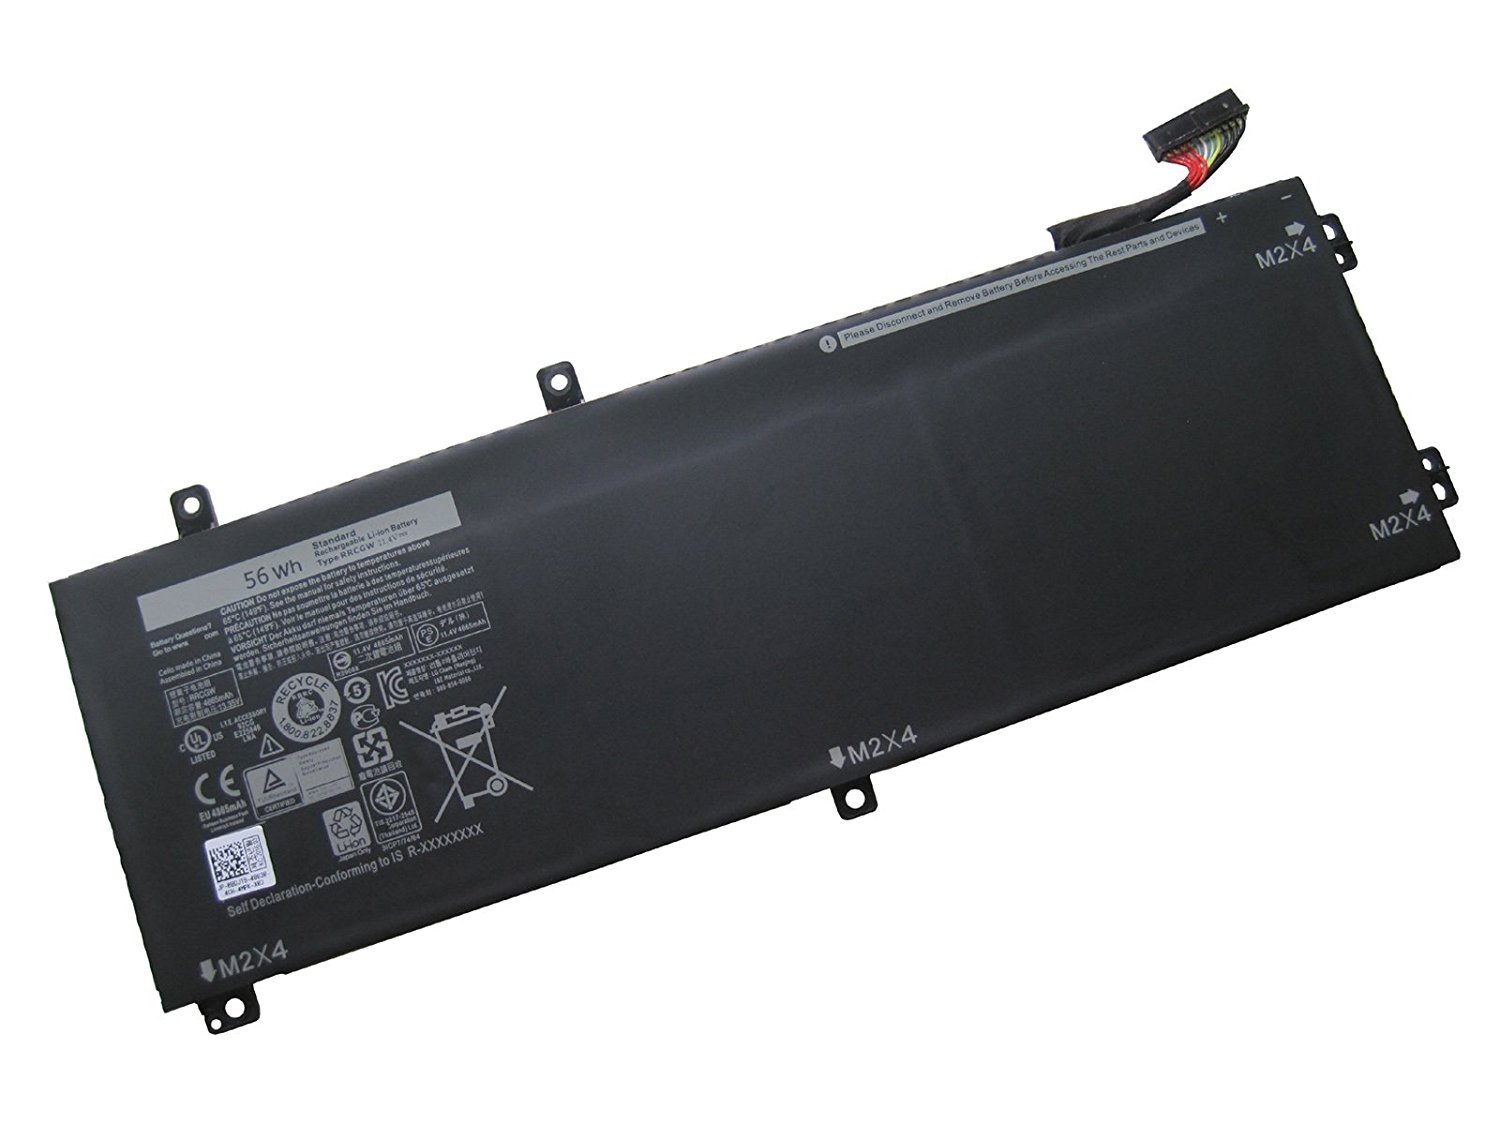 Batterymarket Replacement Laptop Battery RRCGW For DELL XPS 15 9550 Dell Precision 5510 RRCGW M7R96 62MJV - 11.4V 56Wh